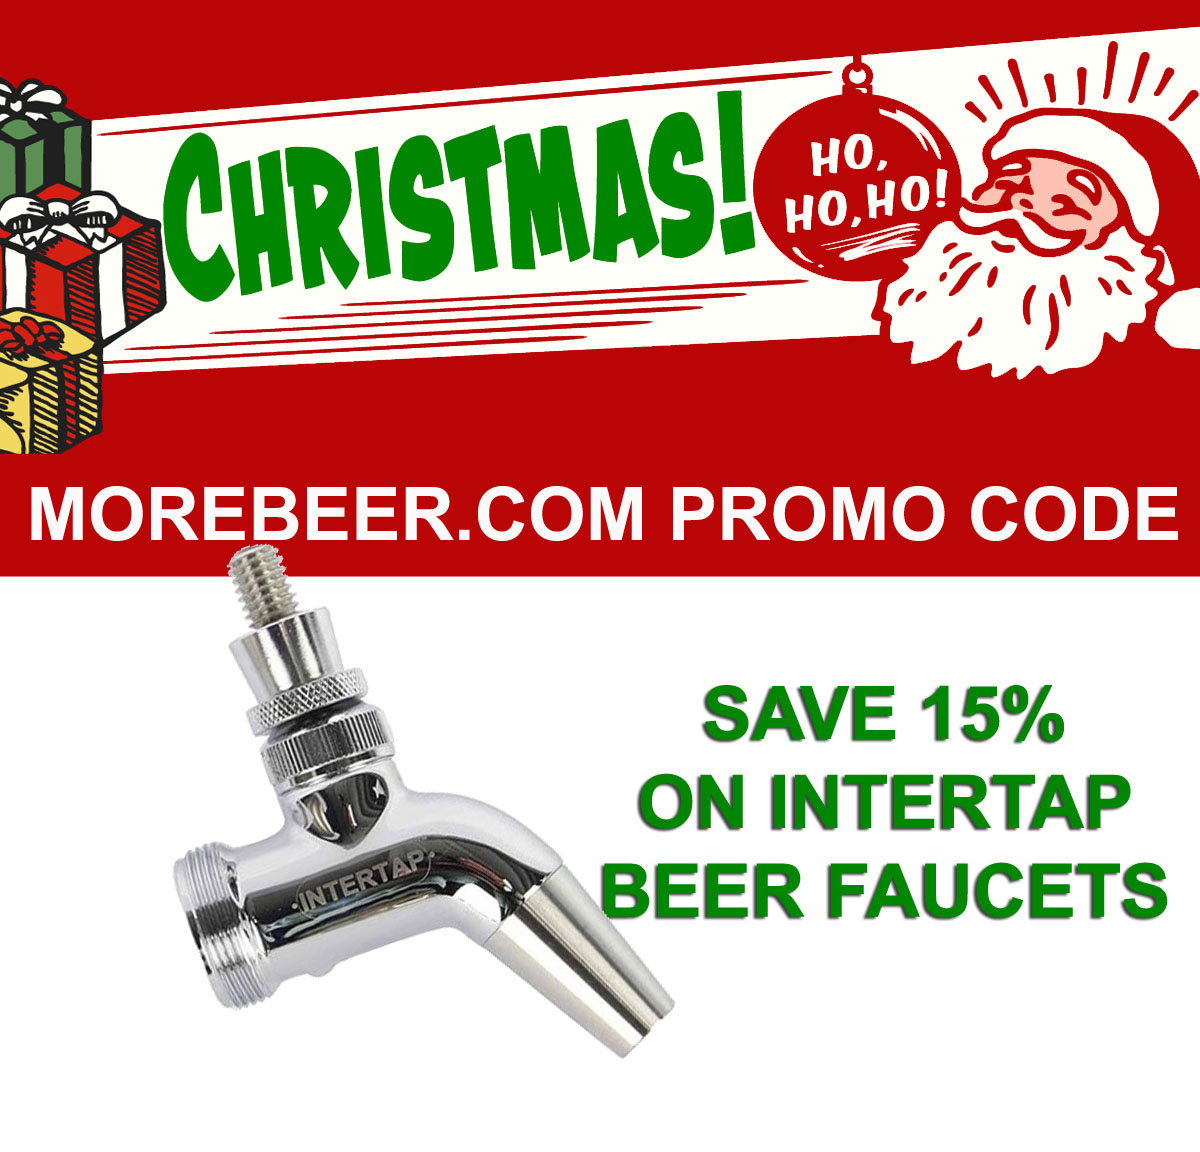 Coupon Code For Save 15% On Intertap Draft Beer Items Including Faucets Coupon Code